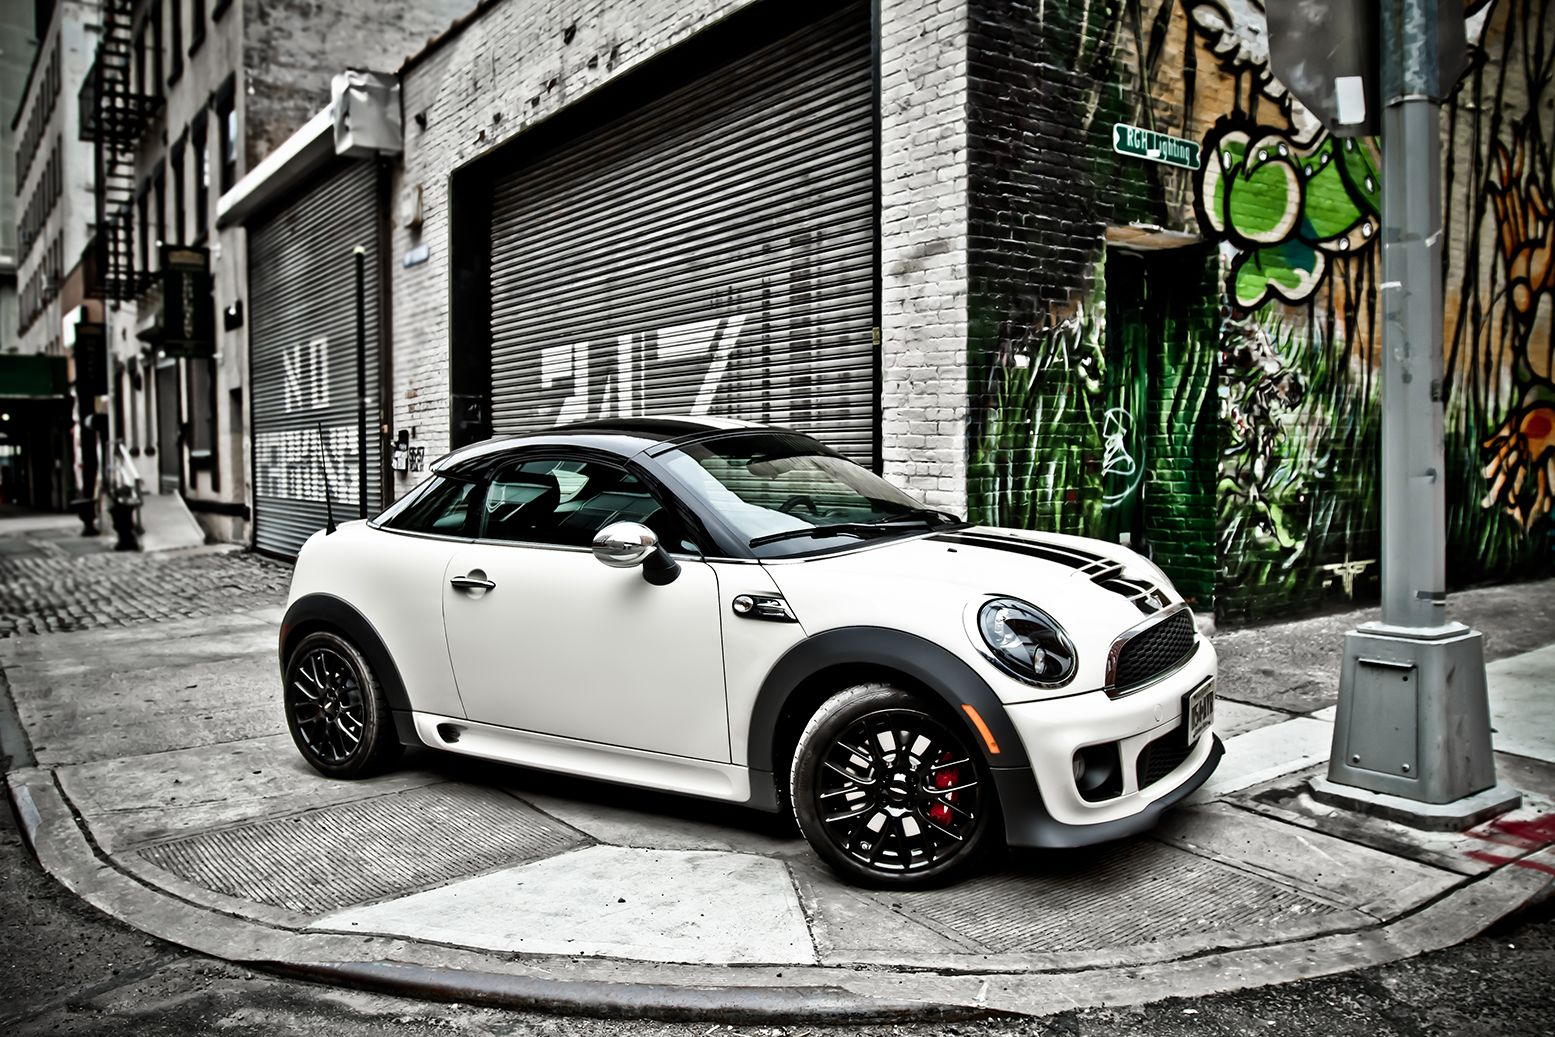 mini cooper coupe jcw water street dumbo bk car. Black Bedroom Furniture Sets. Home Design Ideas